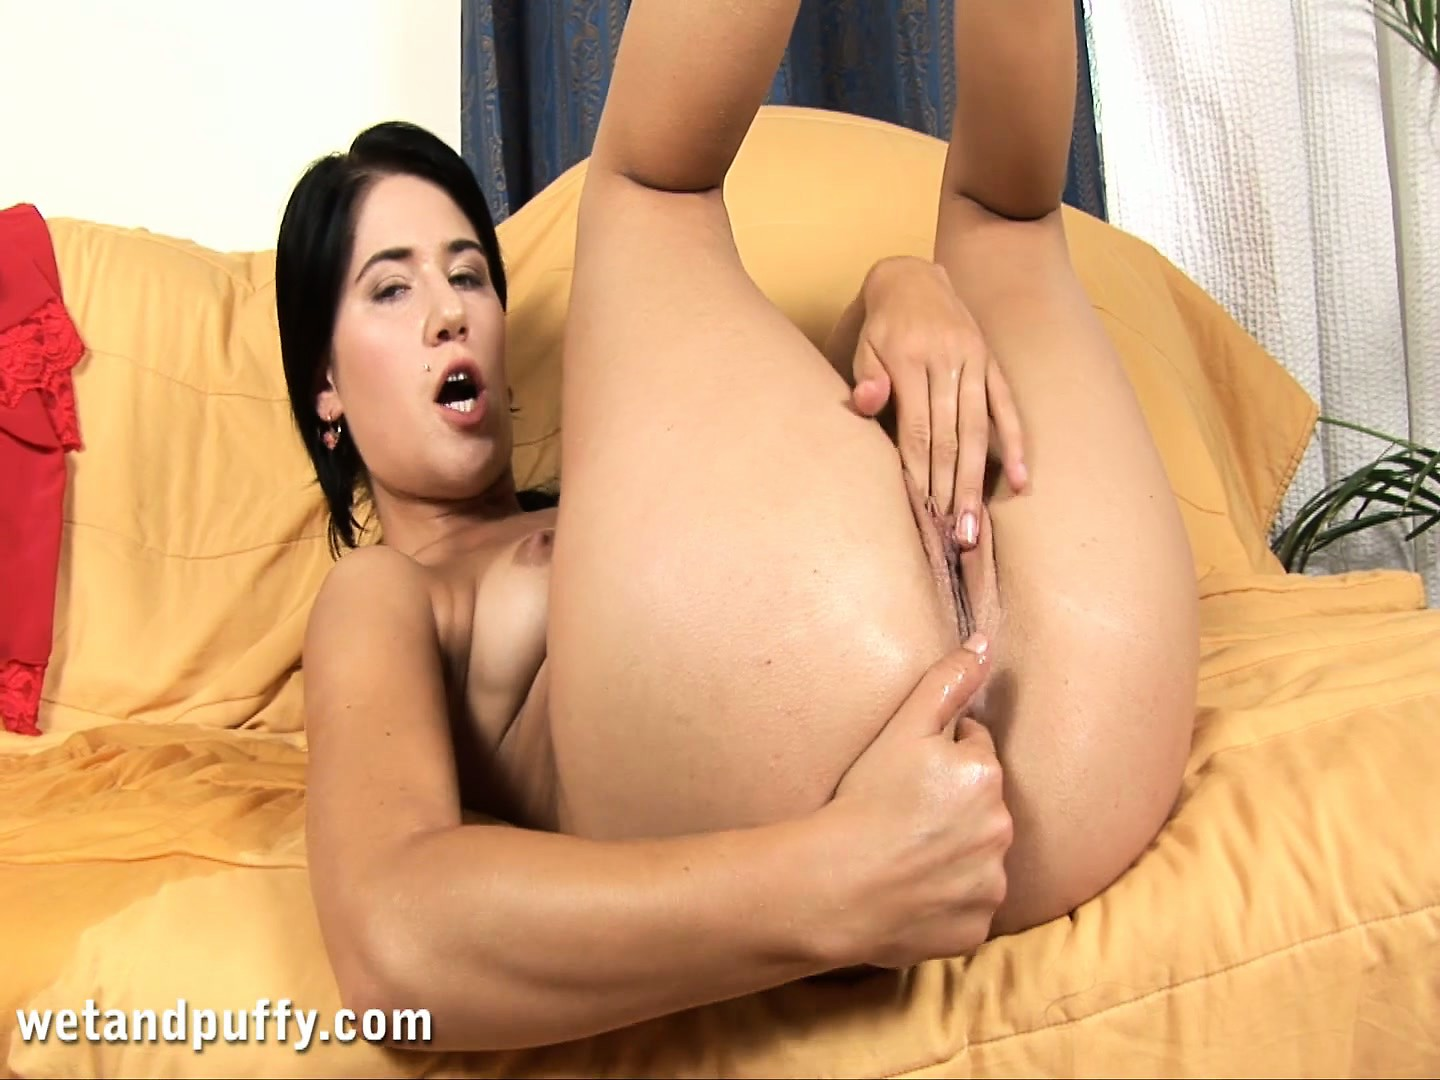 Porno Video of Heidy Drills Her Tight Holes With Her Fingers And A Dildo And Reaches Her Climax